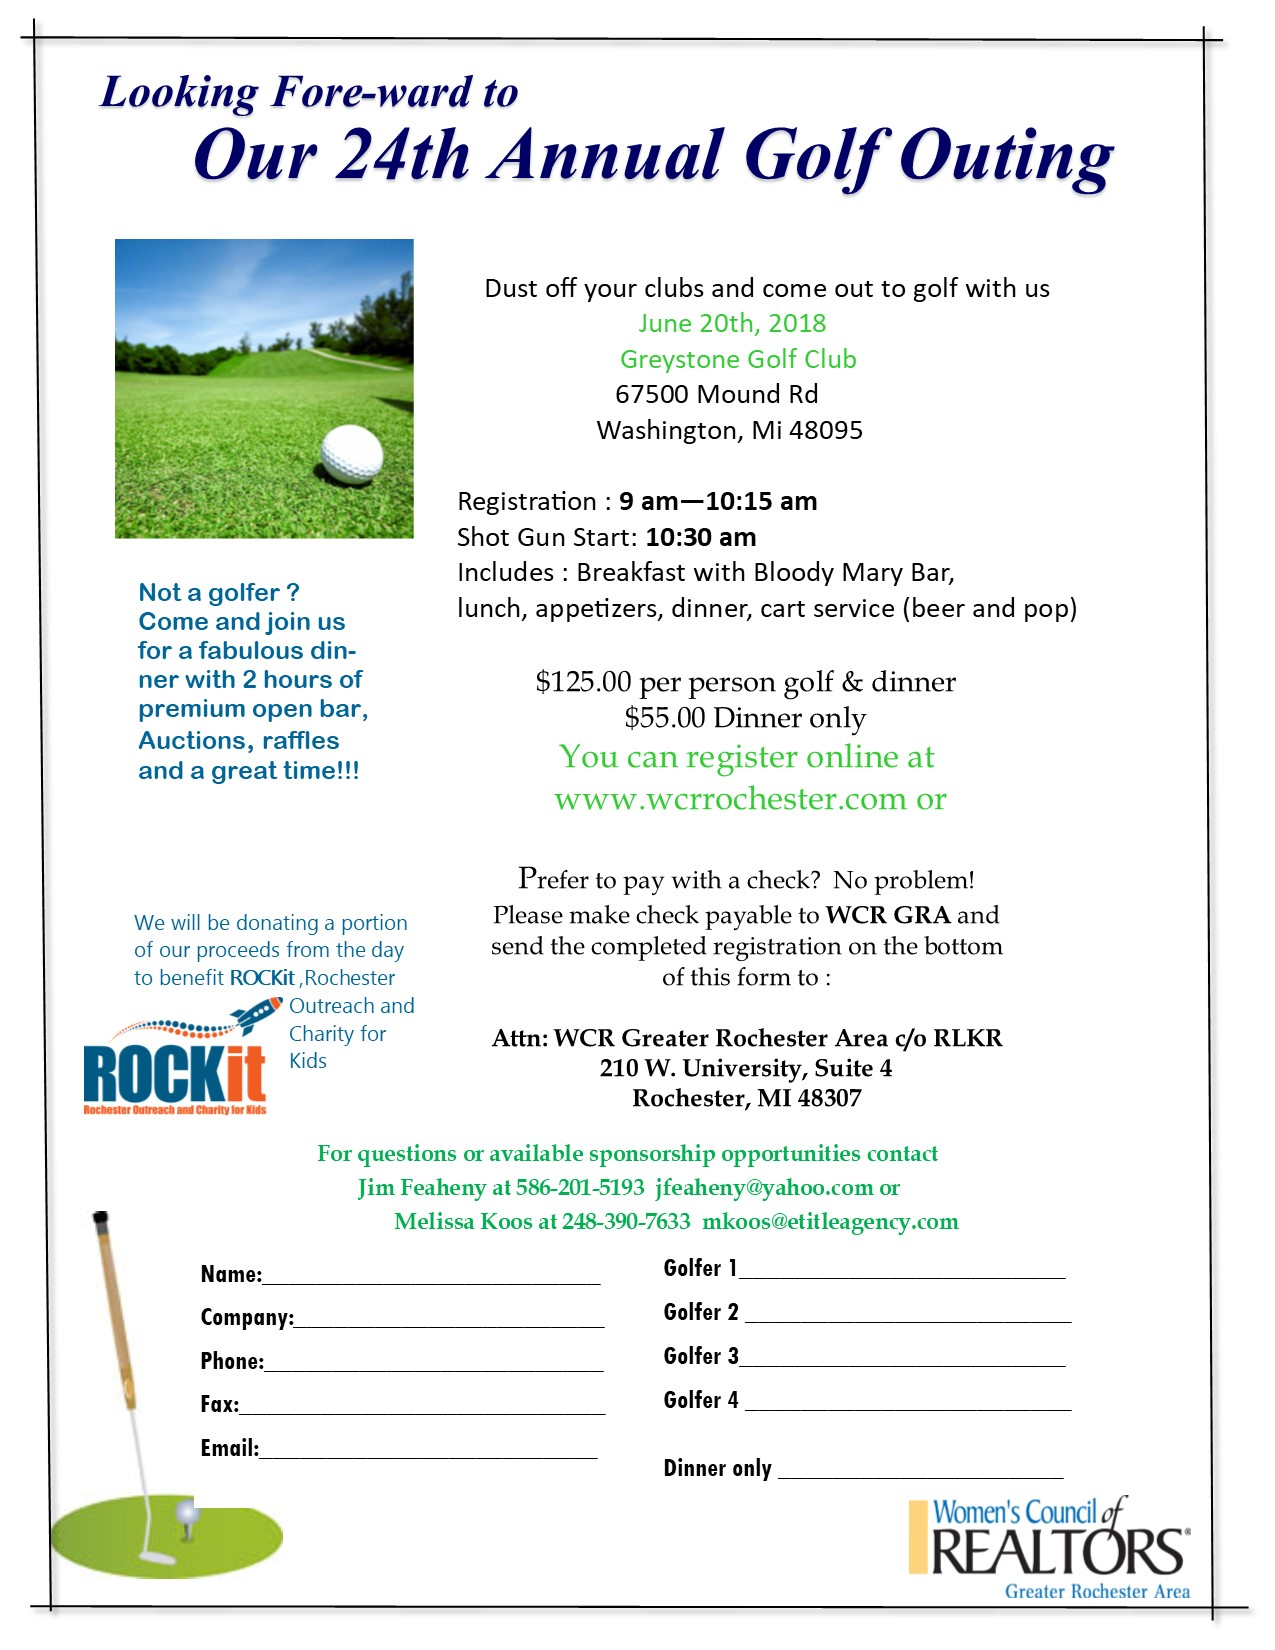 women's council of realtors- greater rochester area - golf outing